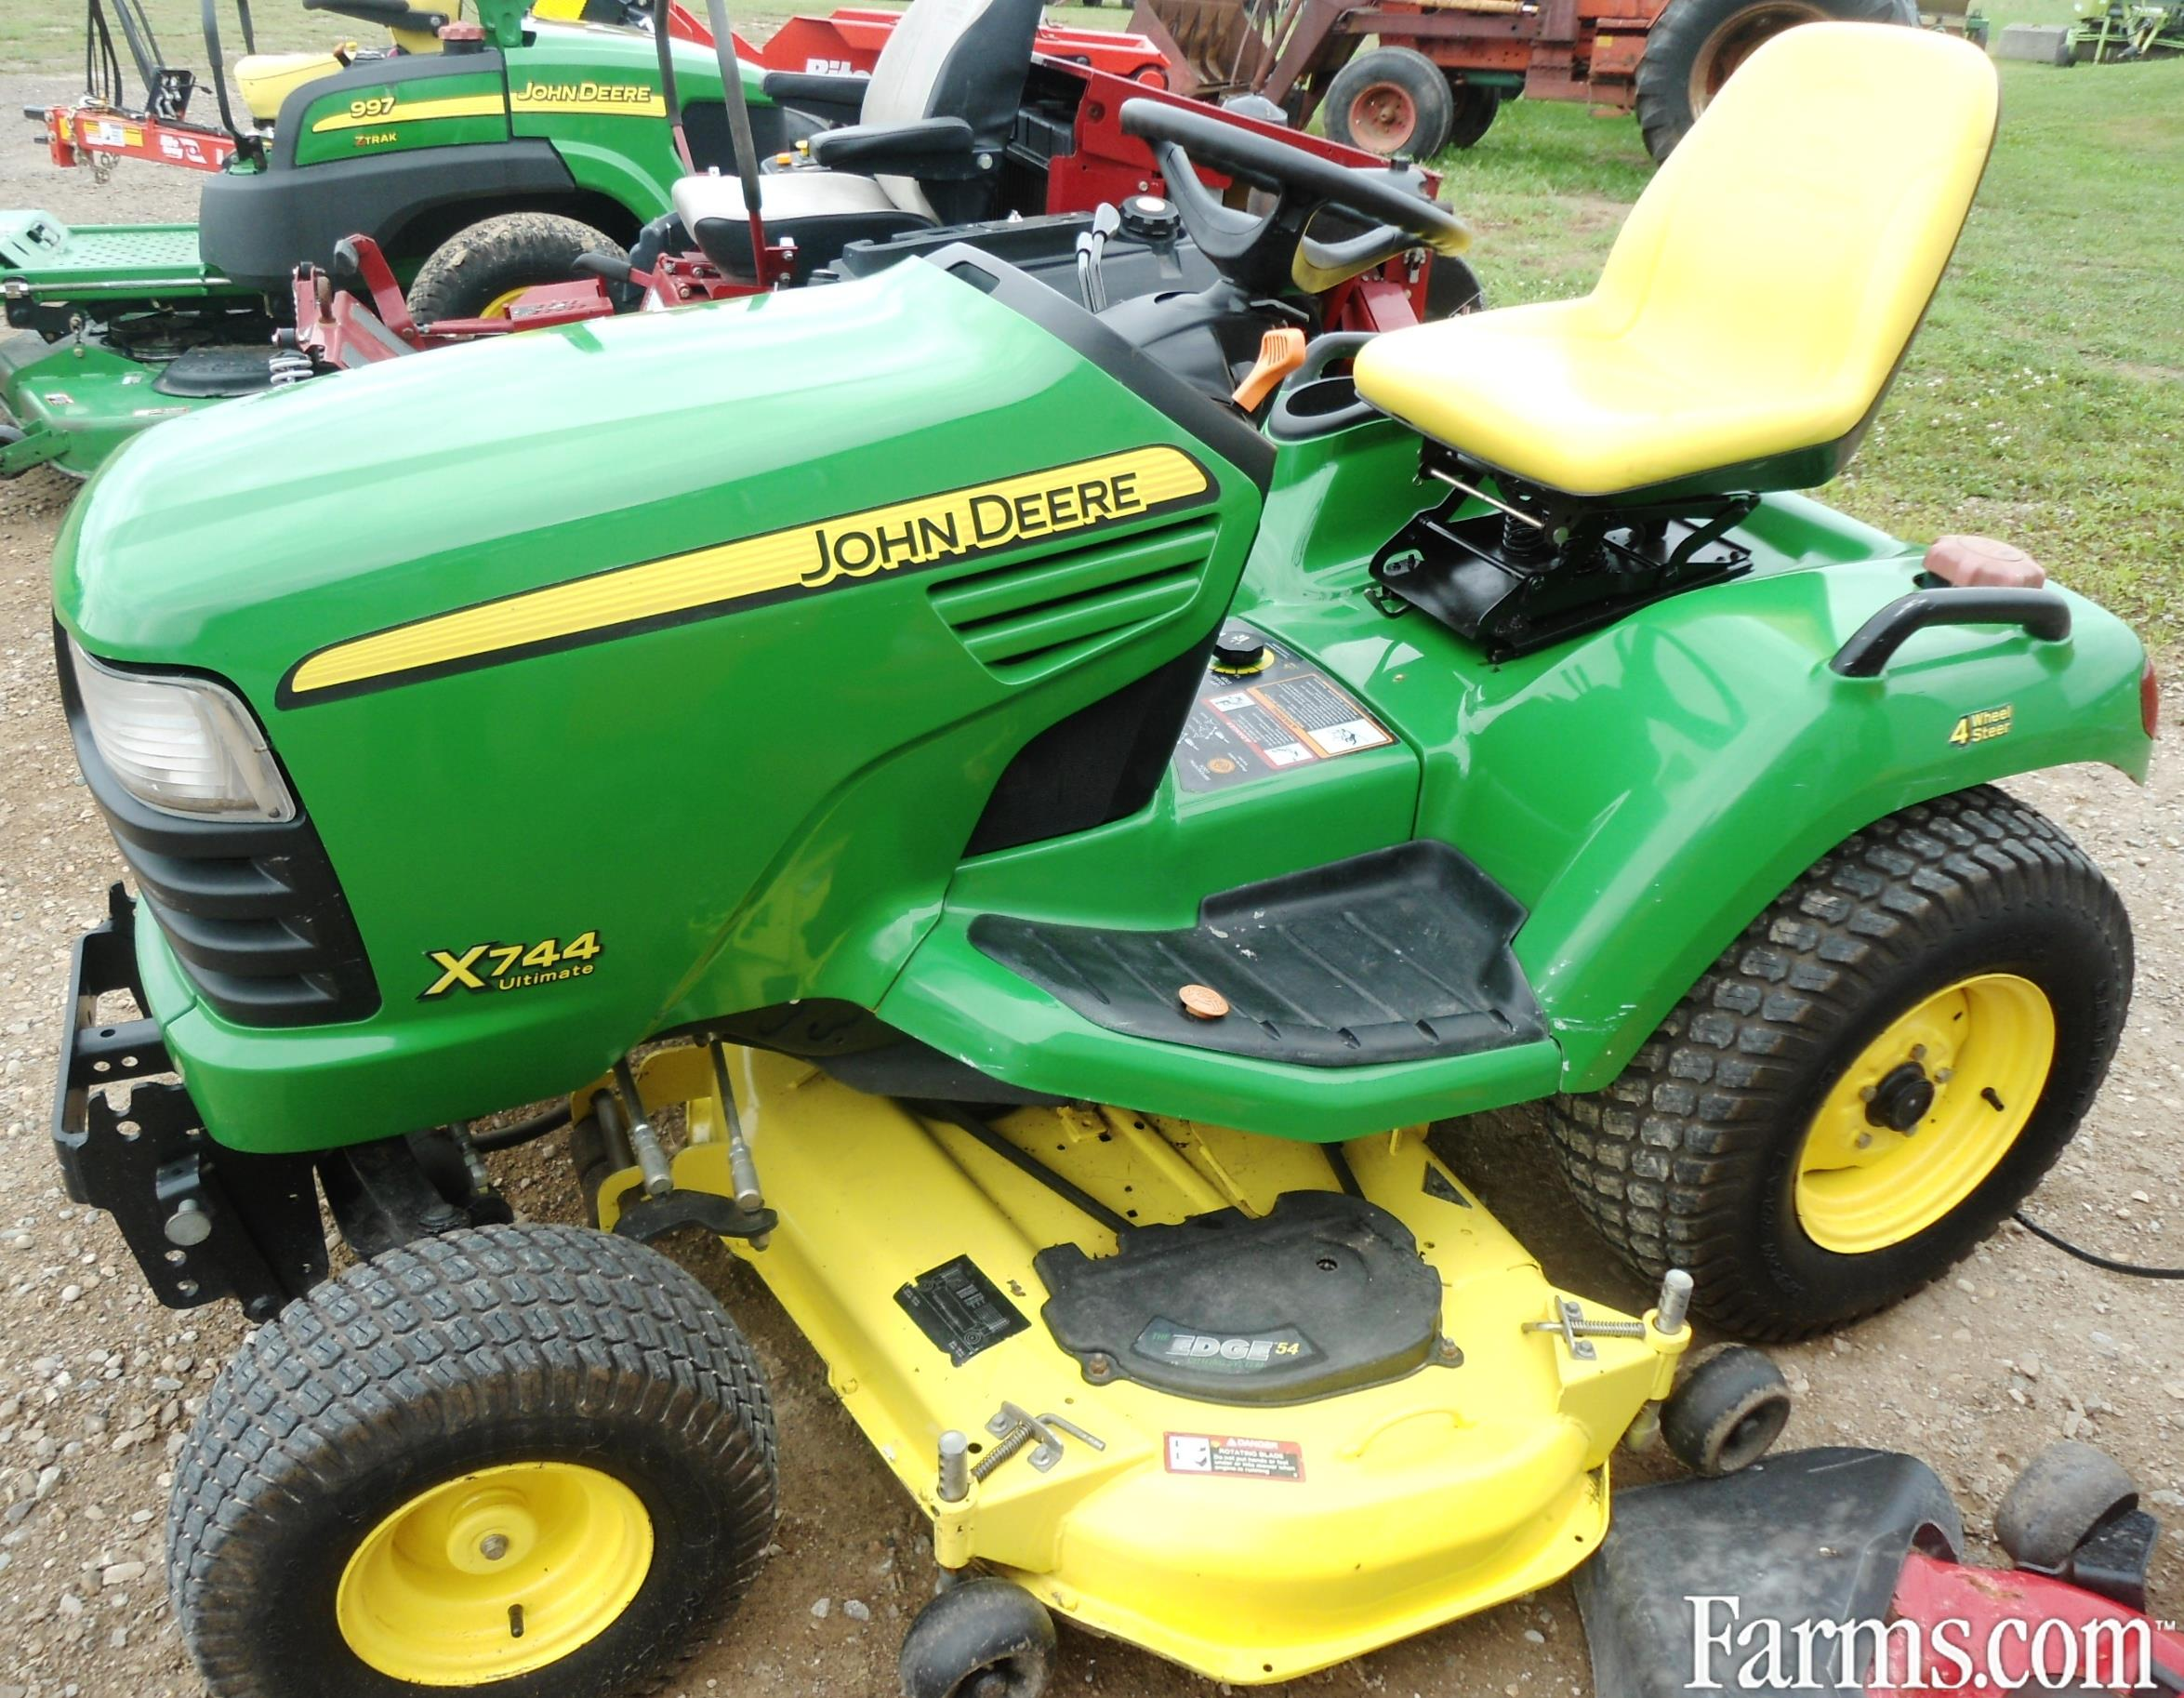 john deere g tractor for sale 1990 ford f150 starter solenoid wiring diagram x744 lawn farms